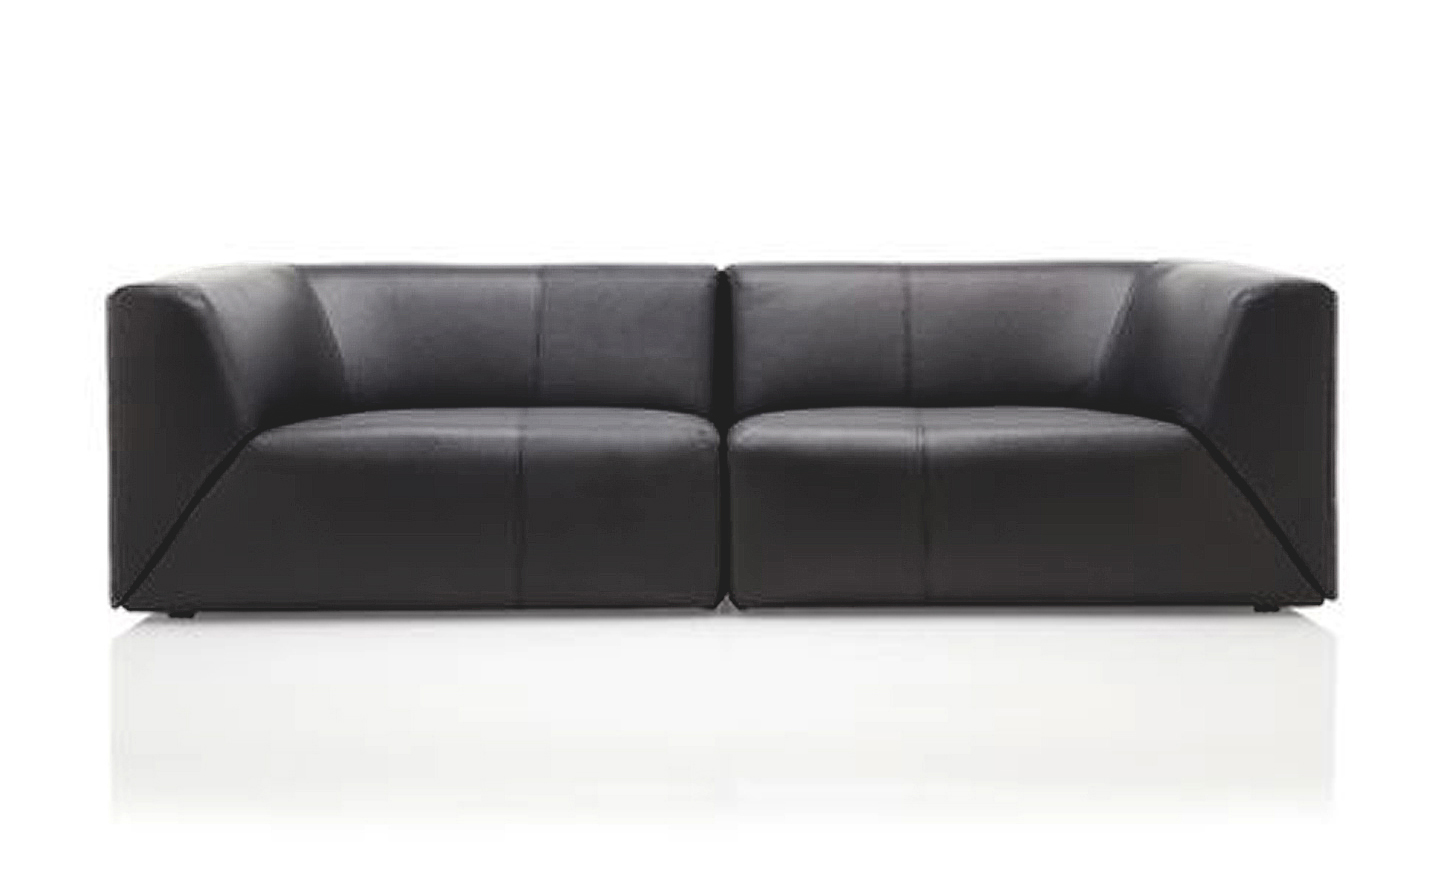 Sofa de cuero contemporaneo bs 4501 for Sofas contemporaneos